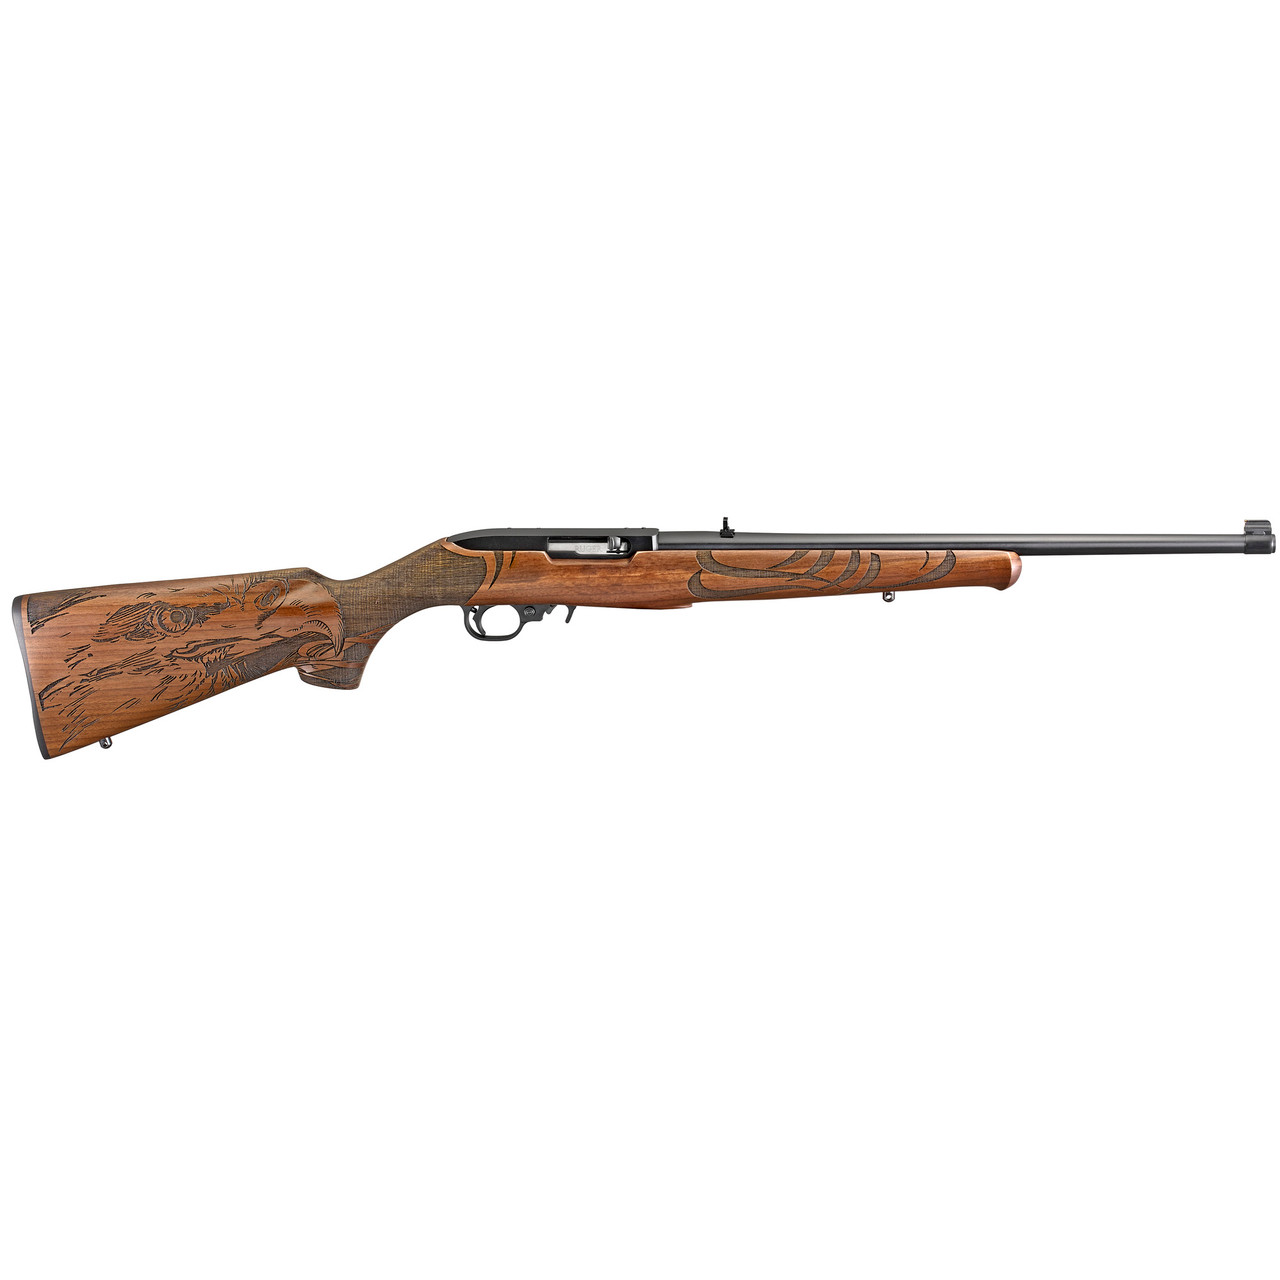 Ruger 10/22 Sporter Engraved Talo Exclusive CALIFORNIA LEGAL - .22LR - Engraved Wood